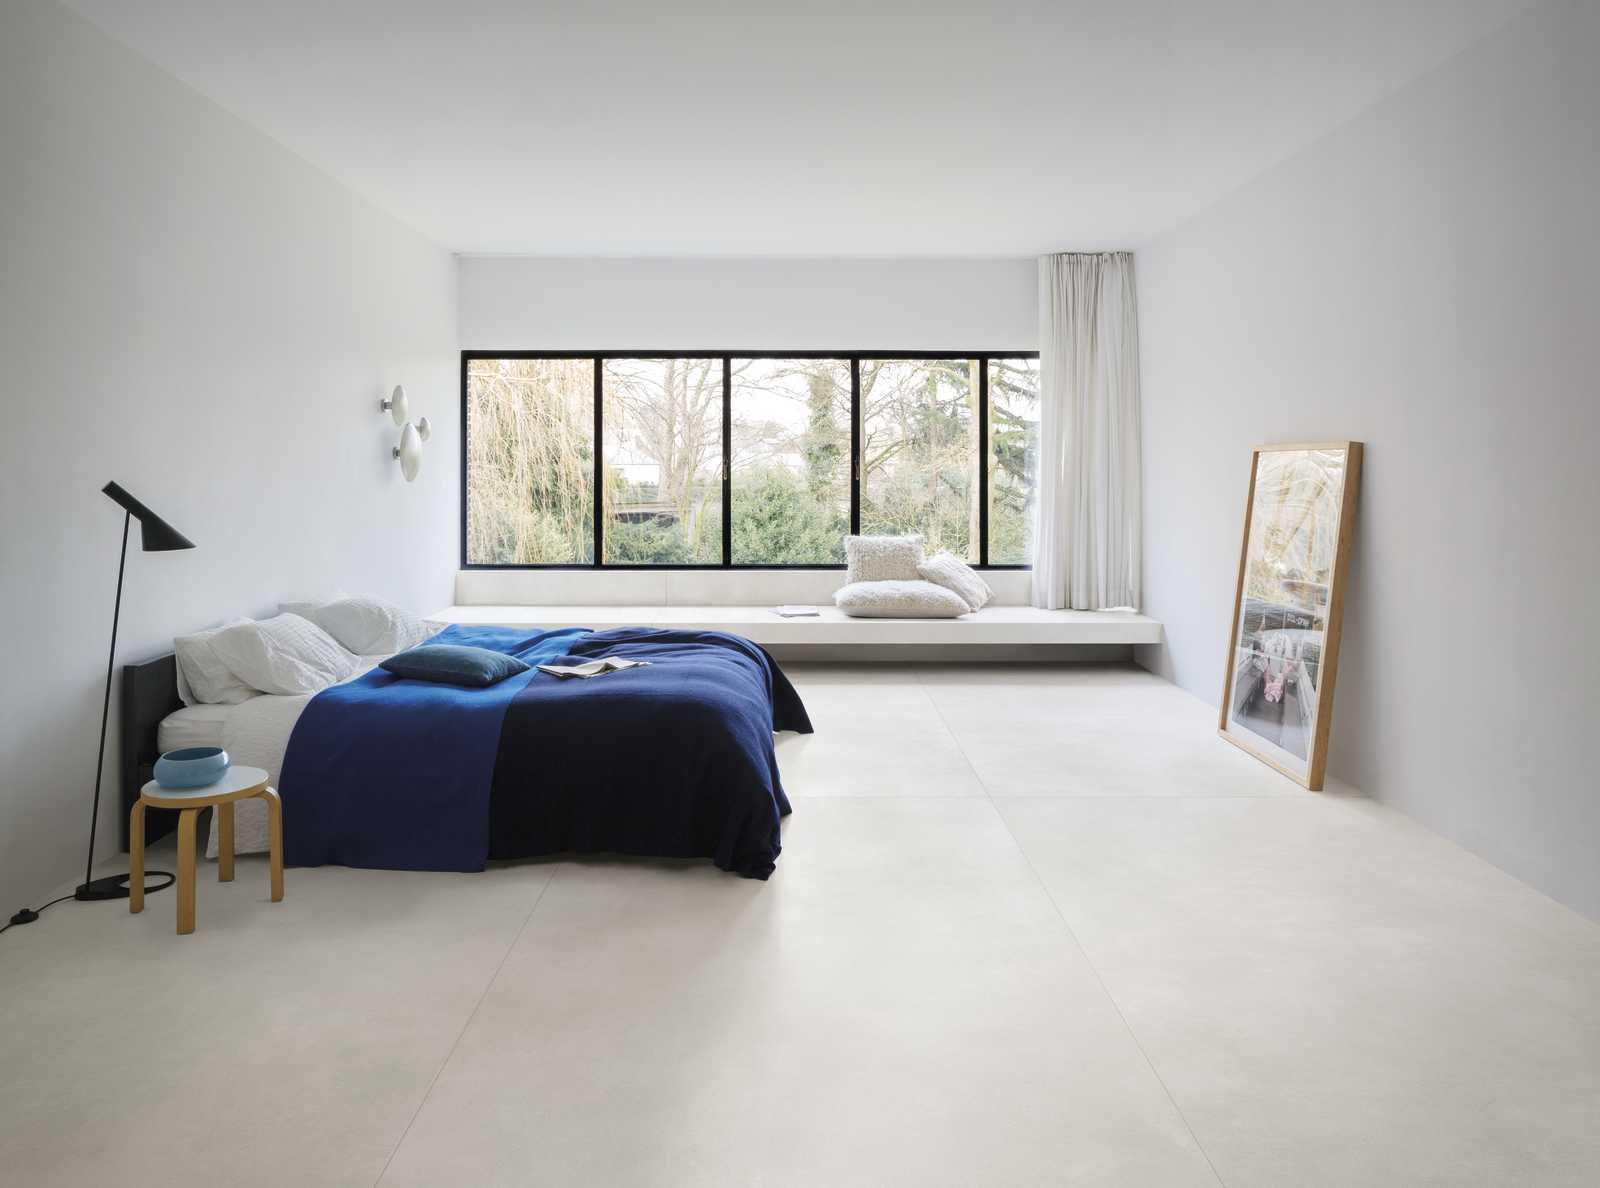 Grande concrete look -  -